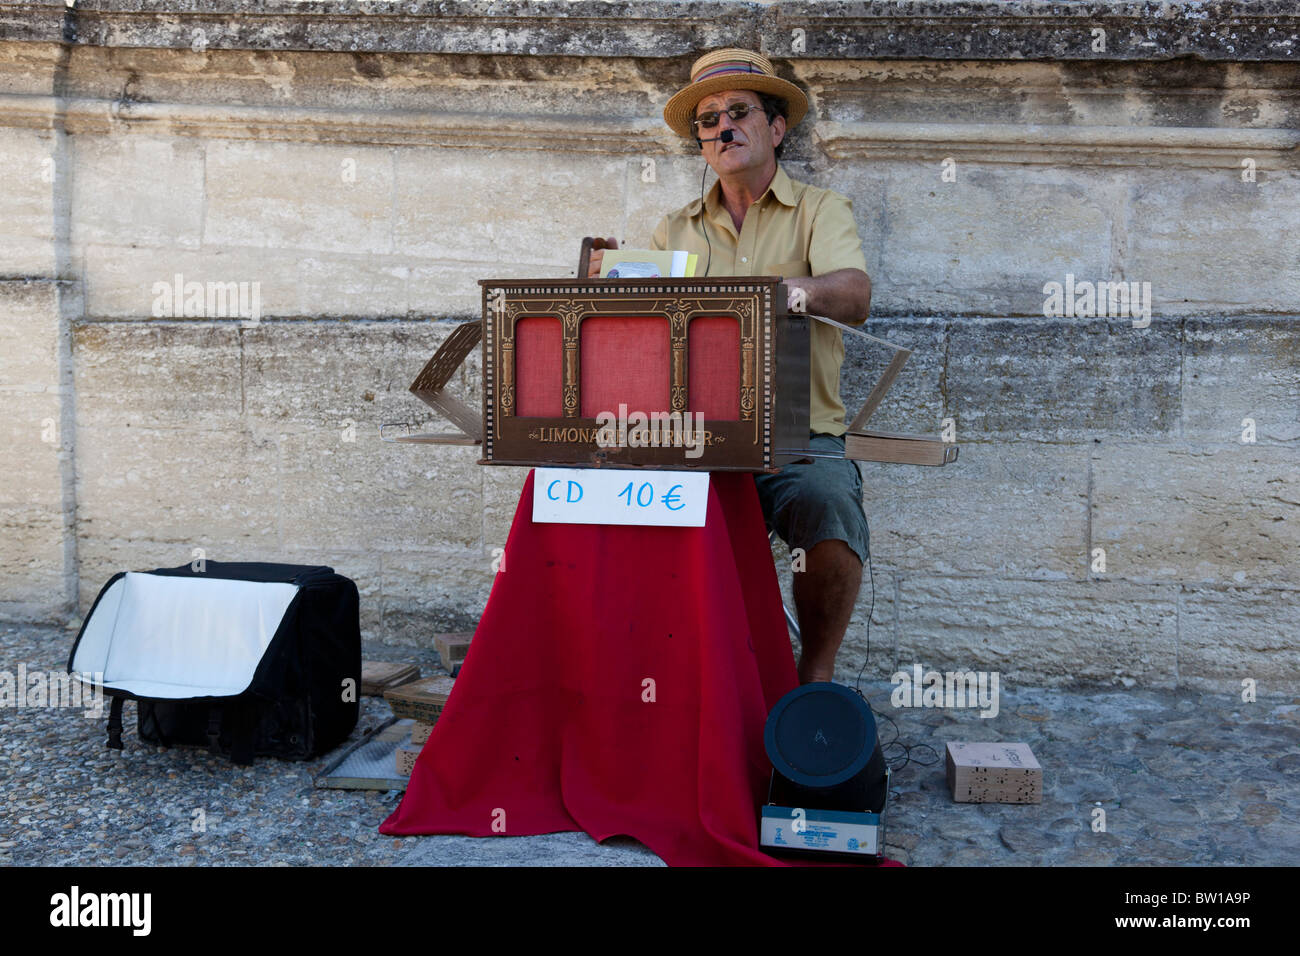 A street musician sings to the accompaniment of a Limonaire Fournier folded paper organ in Avignon, France. - Stock Image